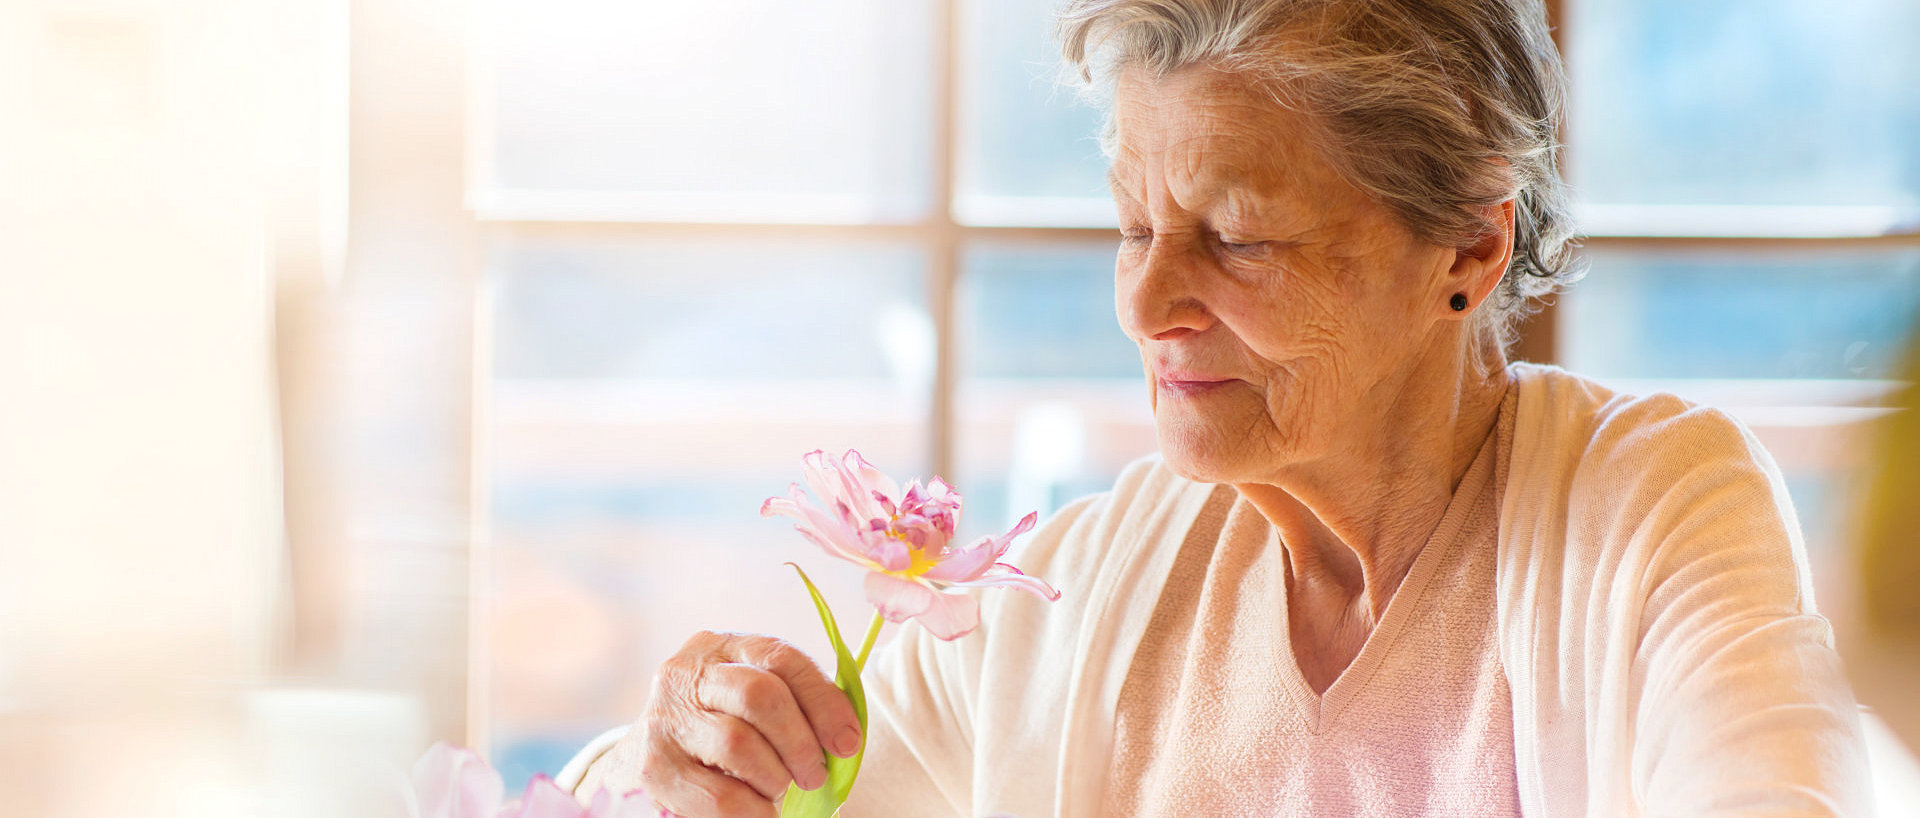 elderly woman holding a flower